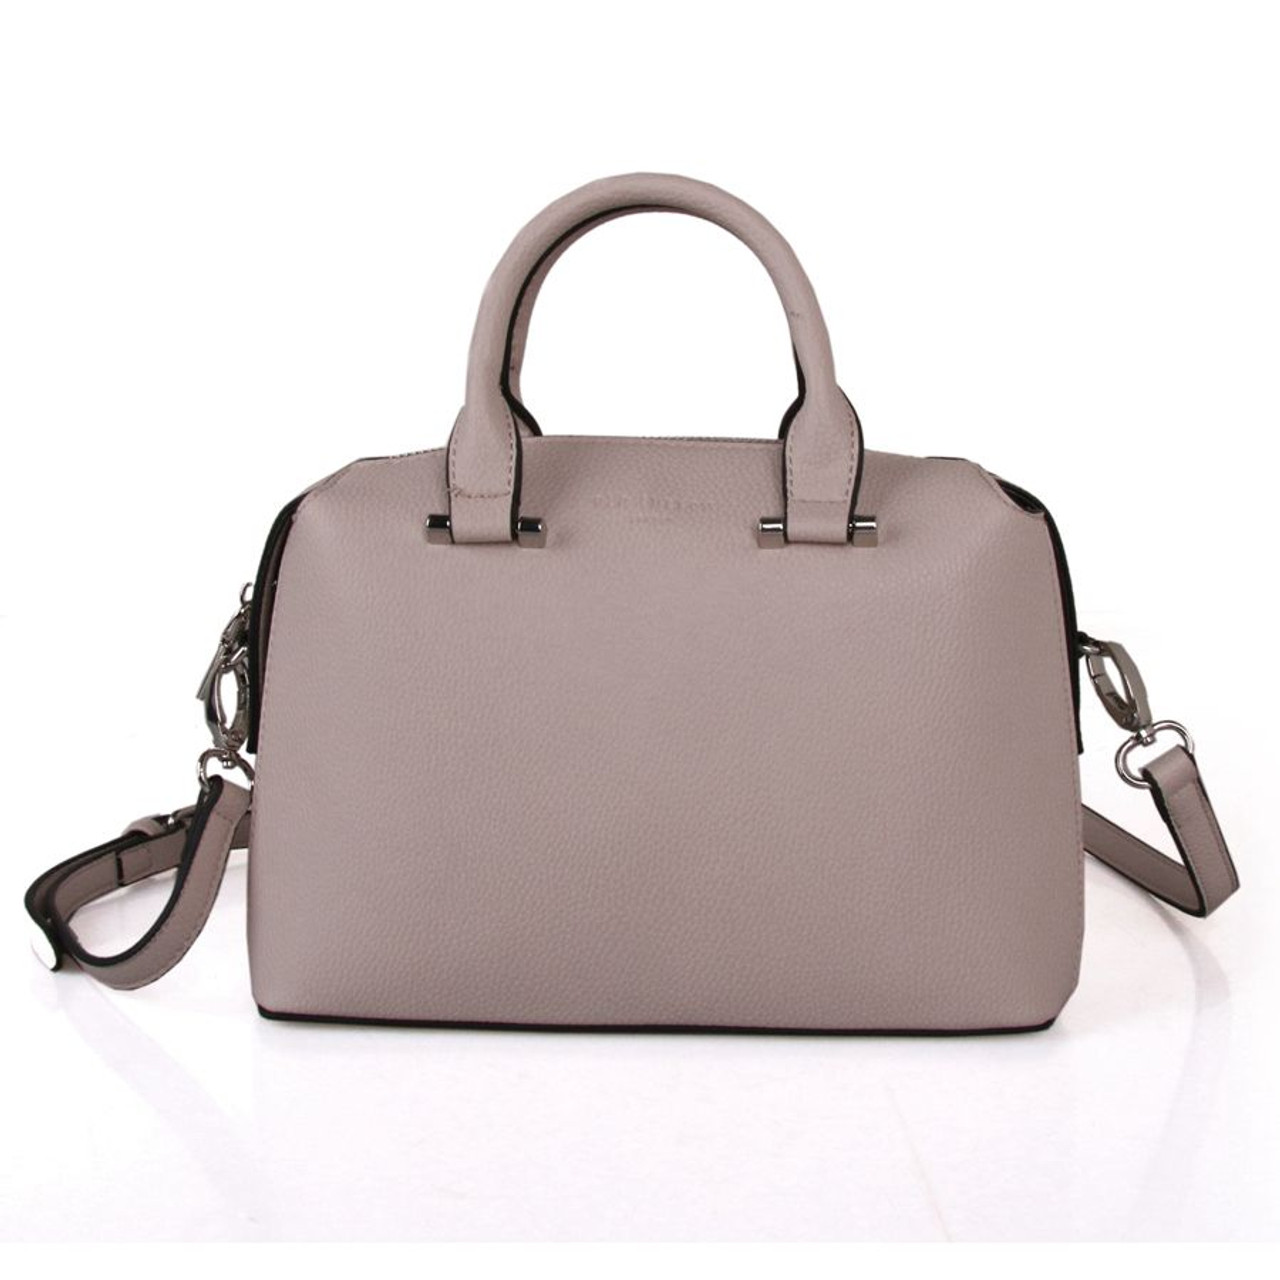 8ab3791d35c1 Red Cuckoo Small Grey Grab Bag - Itsy Bitsy Boutique